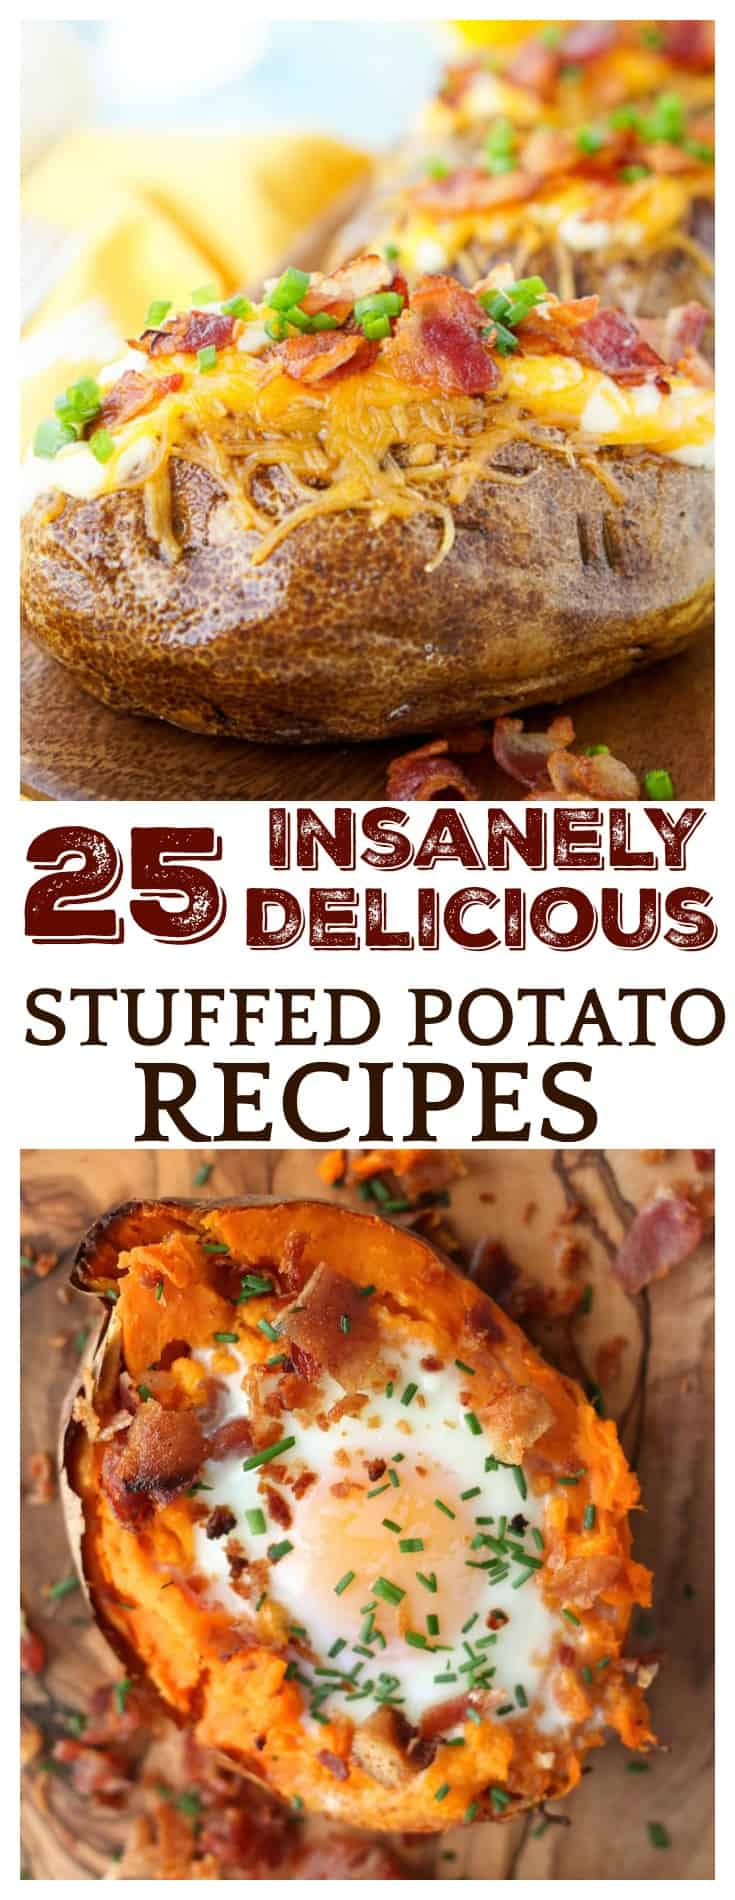 These 25 Insanely Delicious Stuffed Potato Recipes are all so amaing, it will be hard to decide which to try first! From loaded white potatoes to stuffed sweet potatoes, this list has it all! There are even recipes for potato skins and loaded smashed potatoes as well!